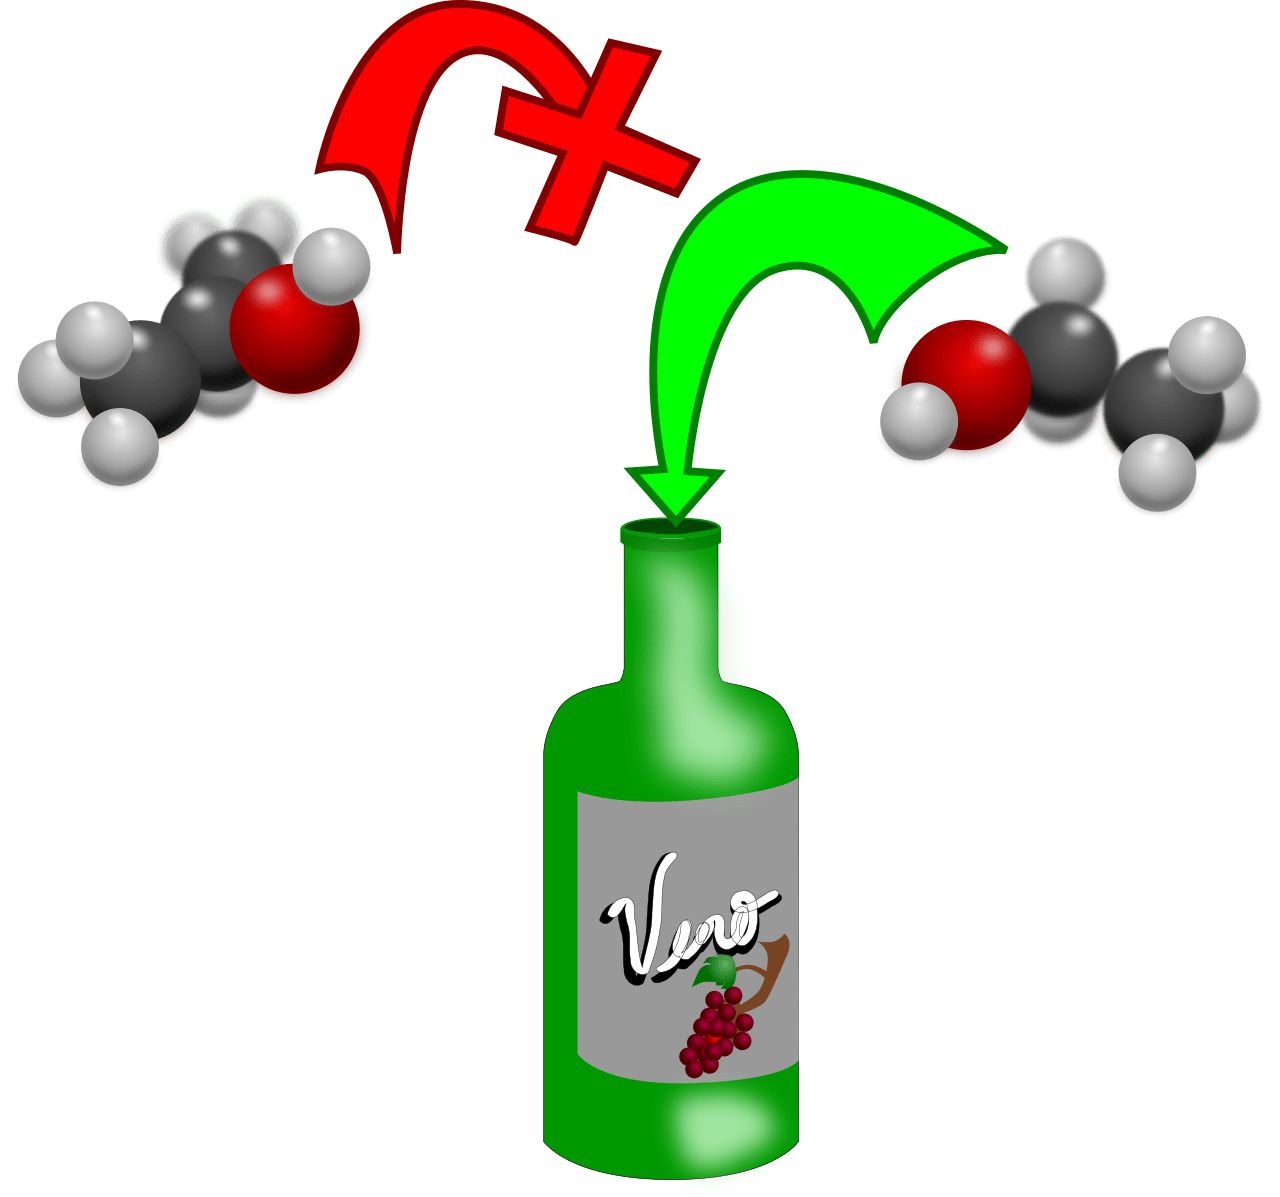 Christmas tipple chemistry - don't add isopropyl alcohol